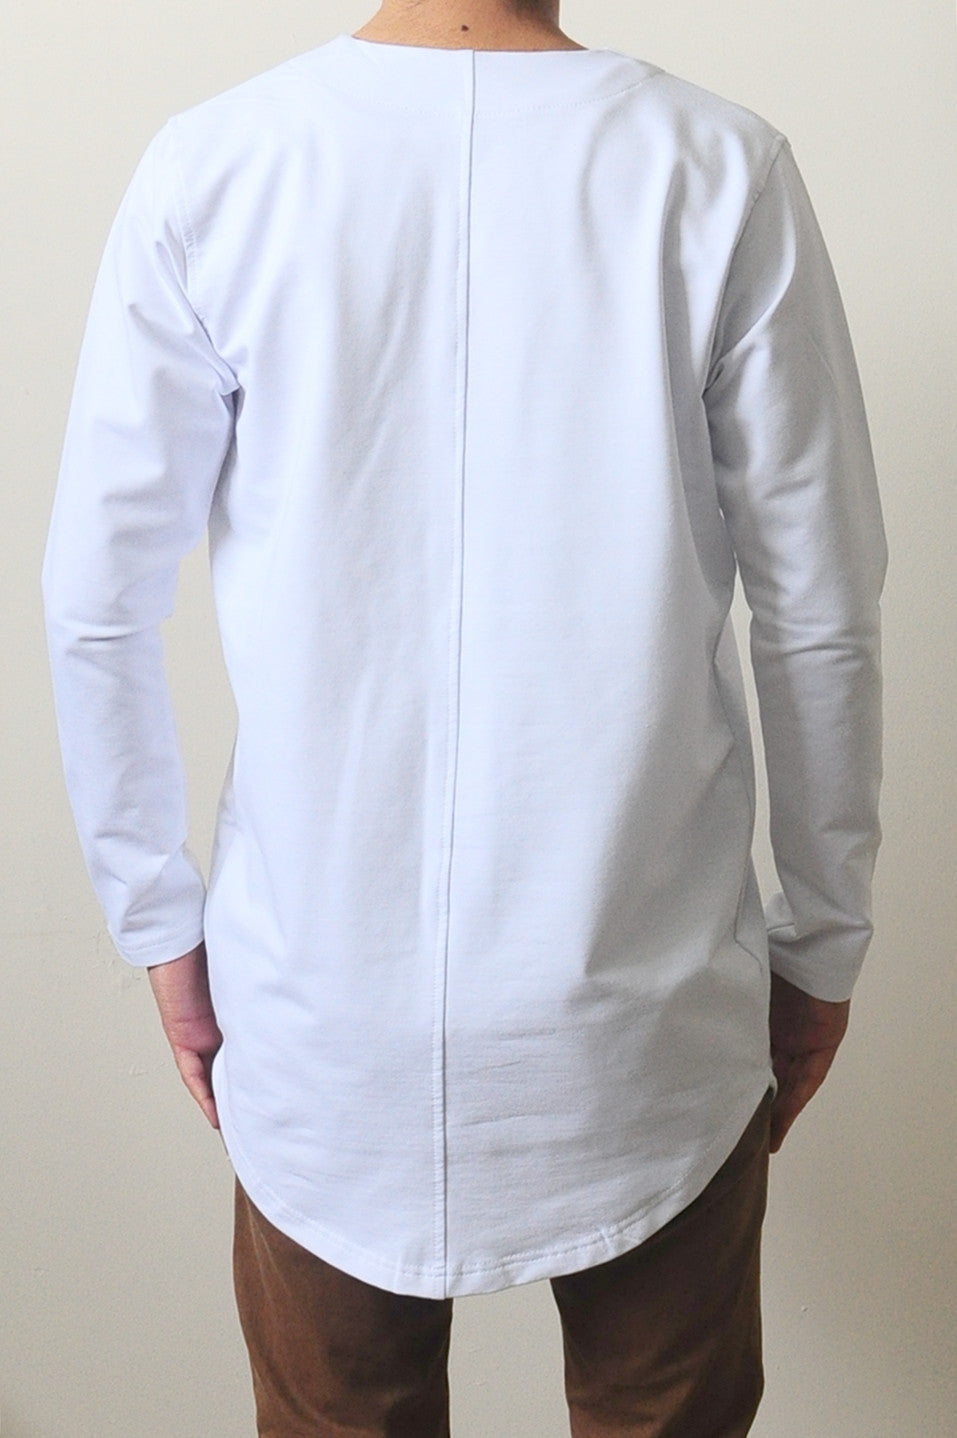 Essential Baseball Round Neck Front Button Jersey Shirt Long Tshirt